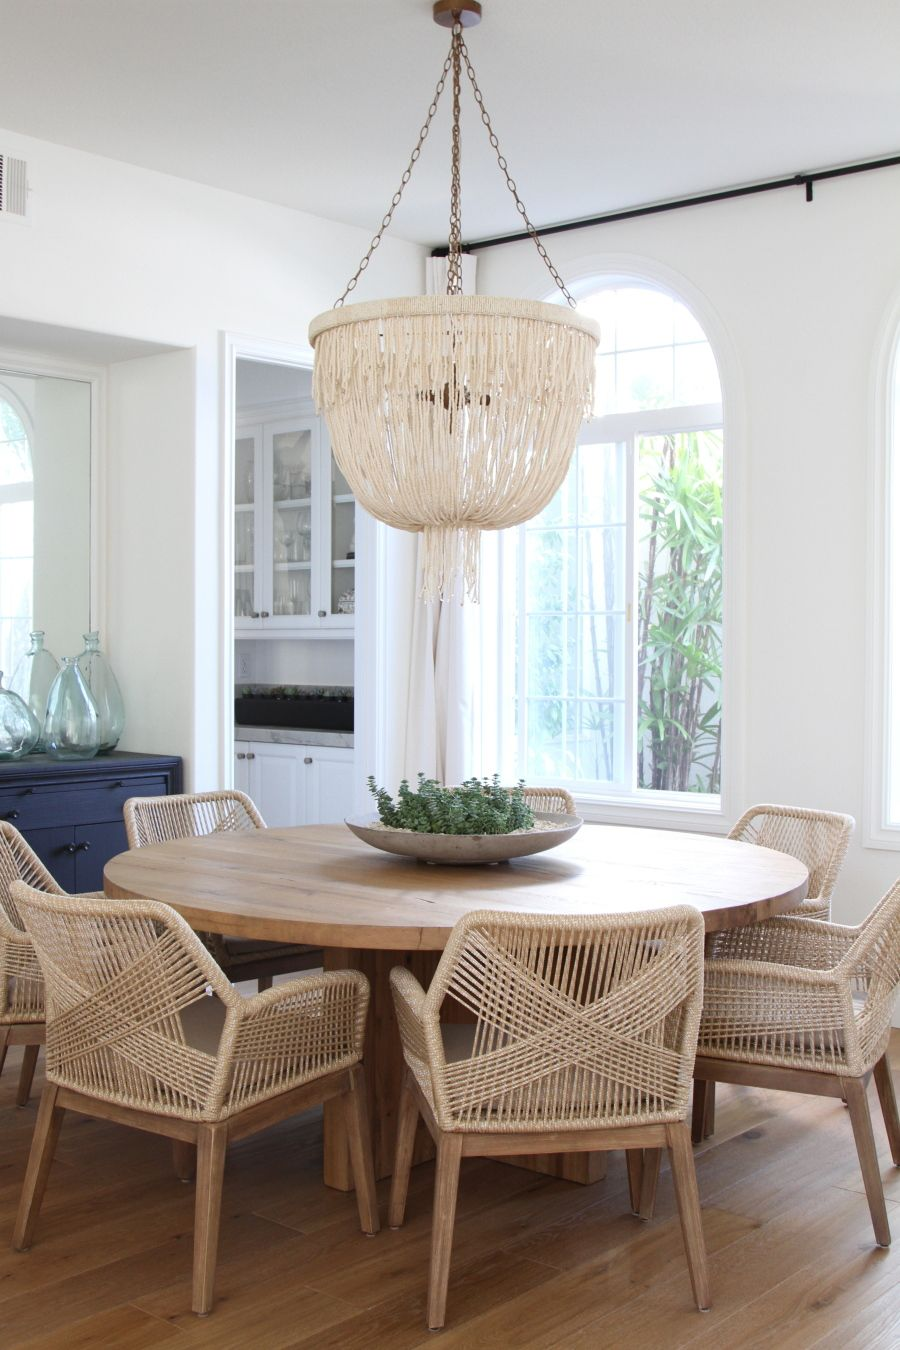 coastal dining room lights. Beaded Chandelier And Woven Chairs Flank A Rounded Wood Dining Table Photography : Becki Owens Read Coastal Room Lights